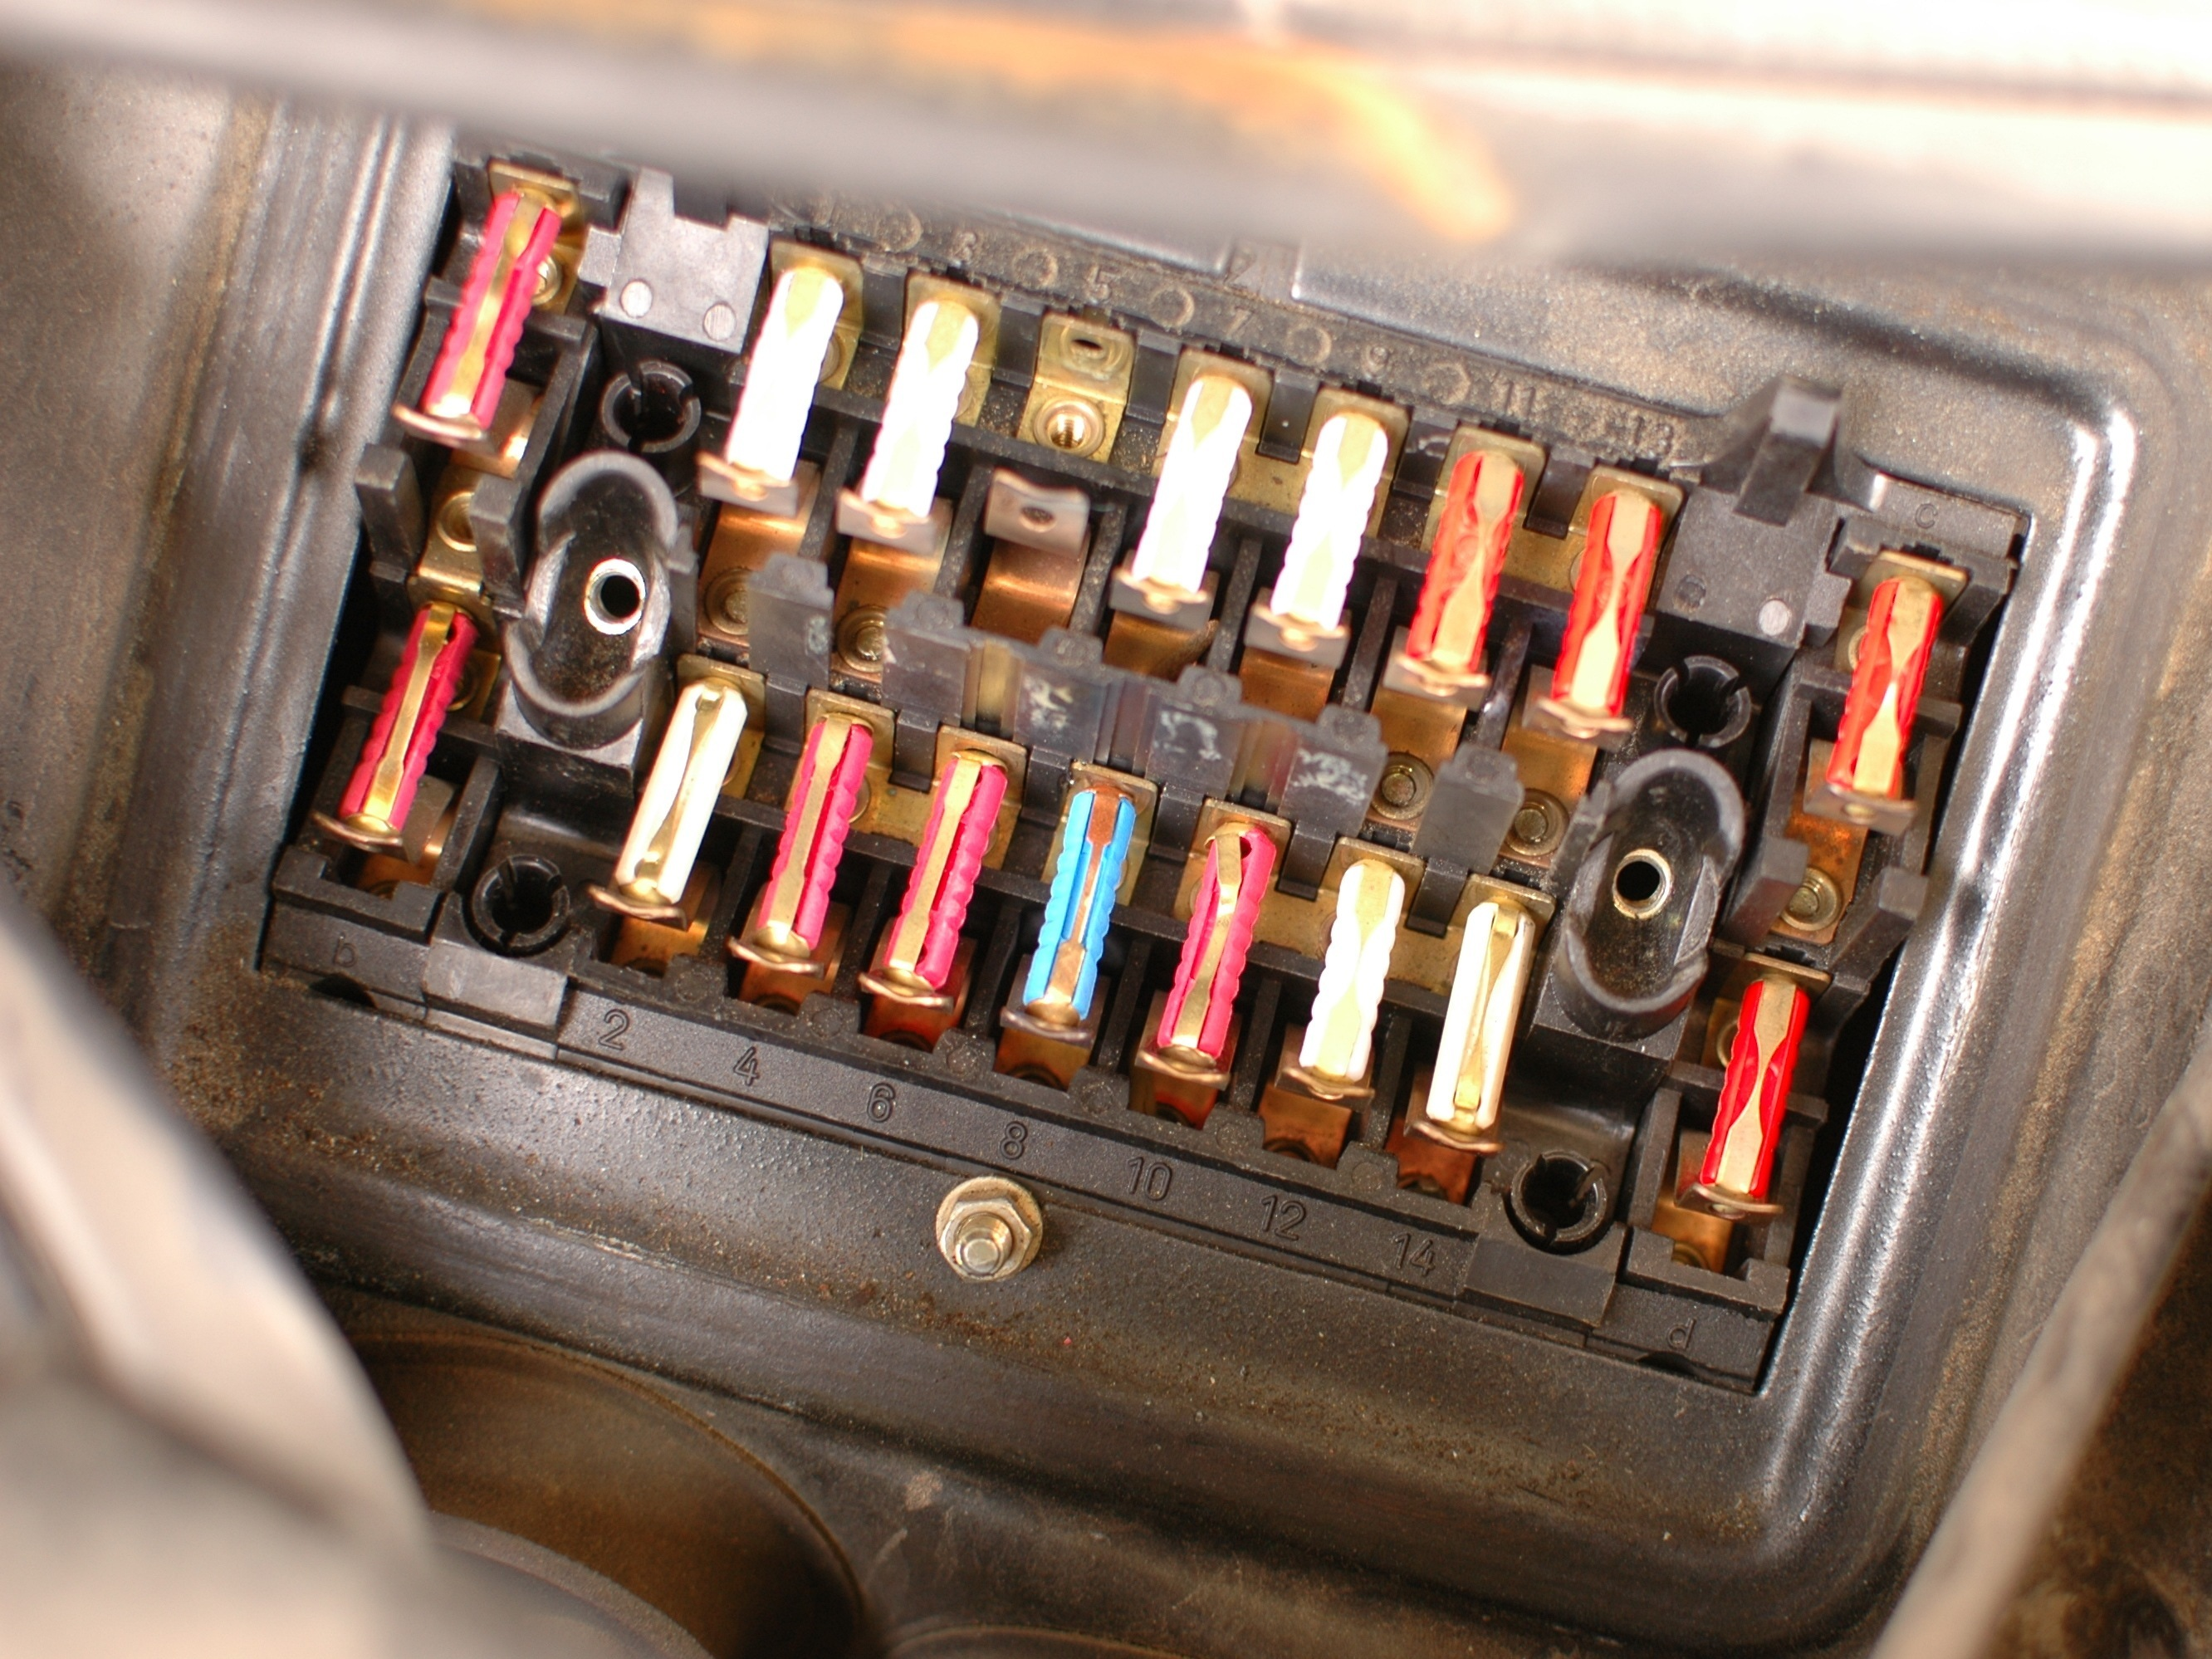 AfYAfmoCaMTVU2ap how to check mercedes w123 fuses ifixit 1978 Mercedes 450SEL at eliteediting.co